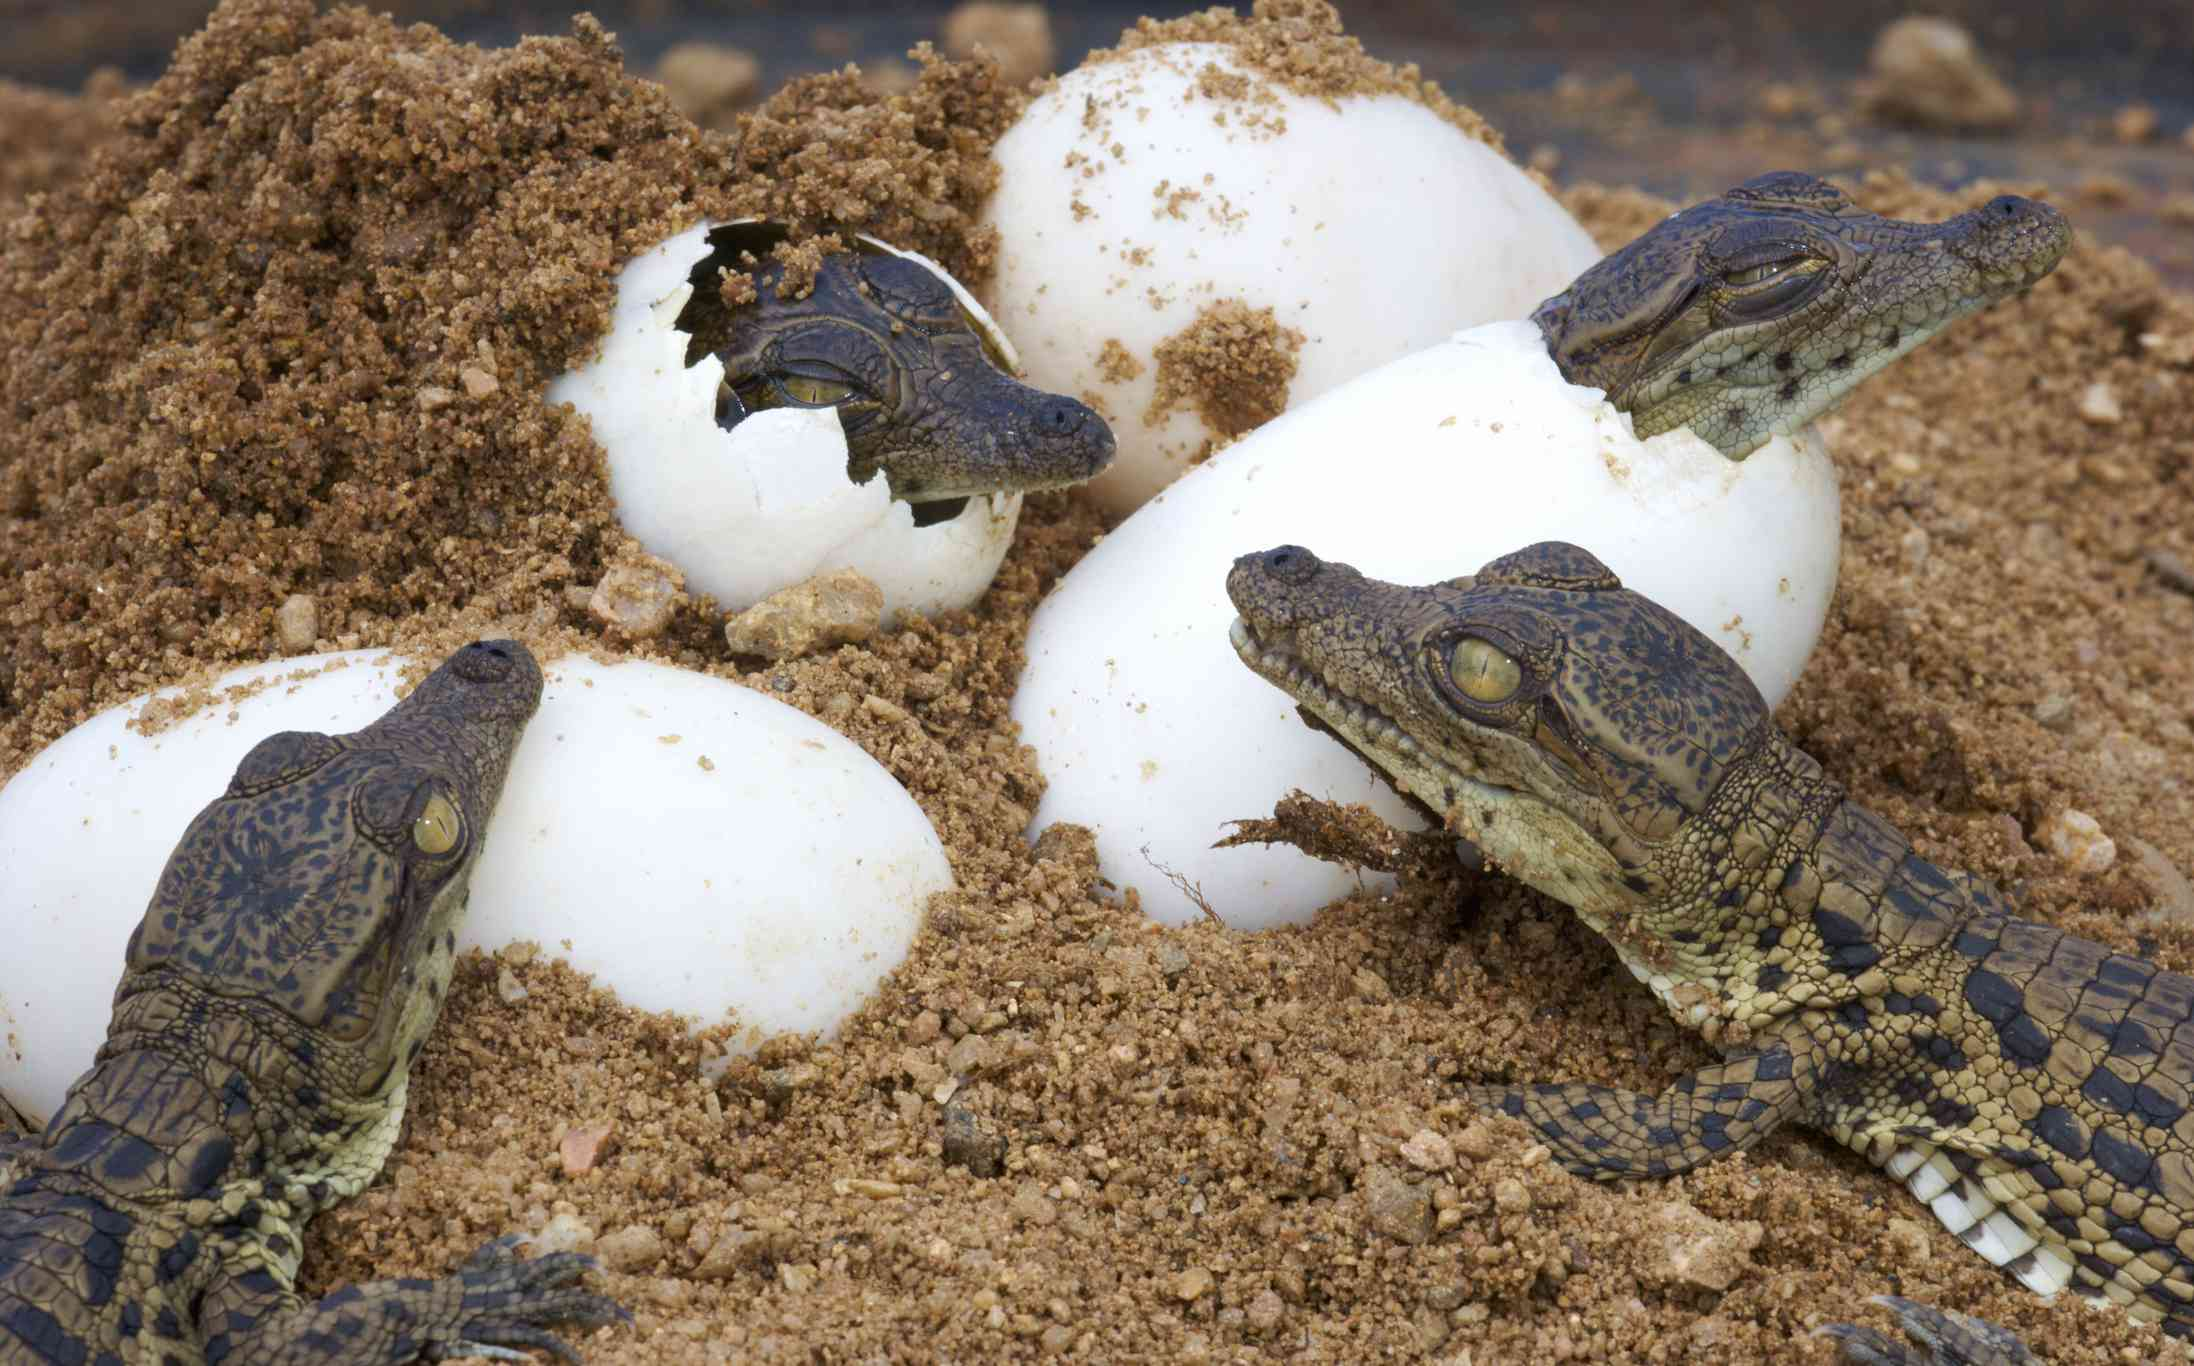 Baby Nile crocodiles hatching from eggs